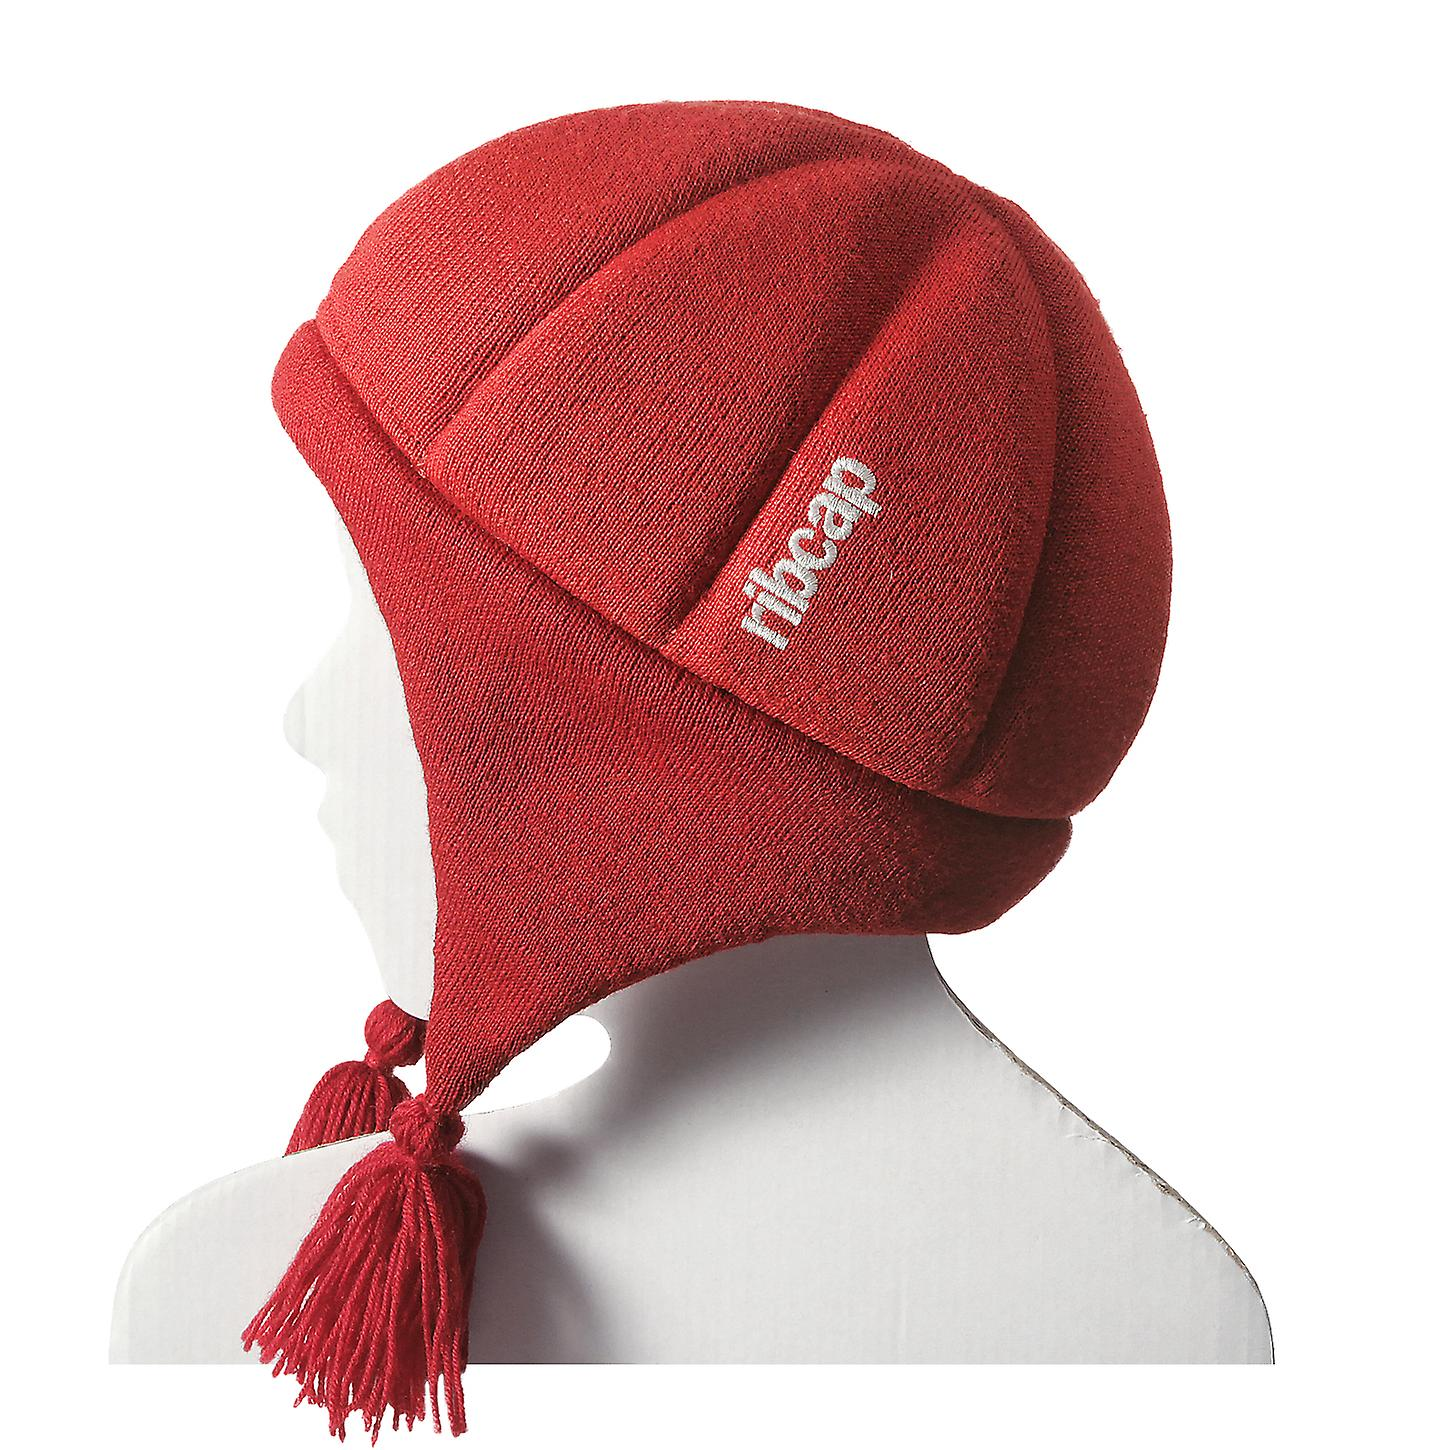 Ribcap - Chessy rouge Midi Enfants - 50-52cm